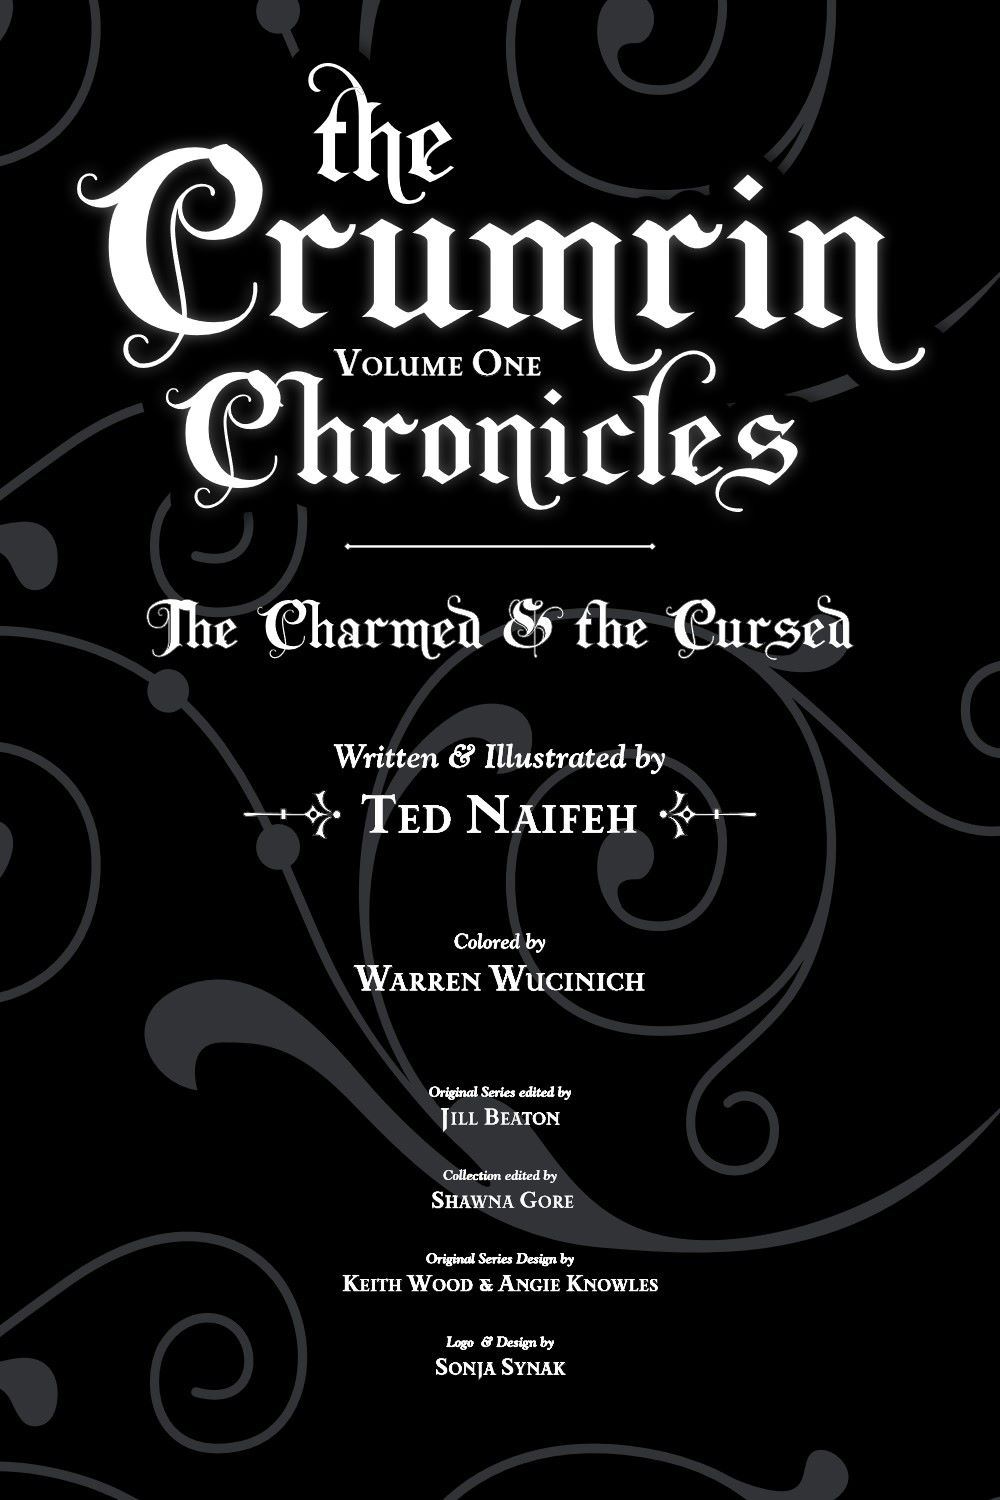 CRUMCHRON-V1-REFERENCE-004 ComicList Previews: THE CRUMRIN CHRONICLES VOLUME 1 THE CHARMED AND THE CURSED TP